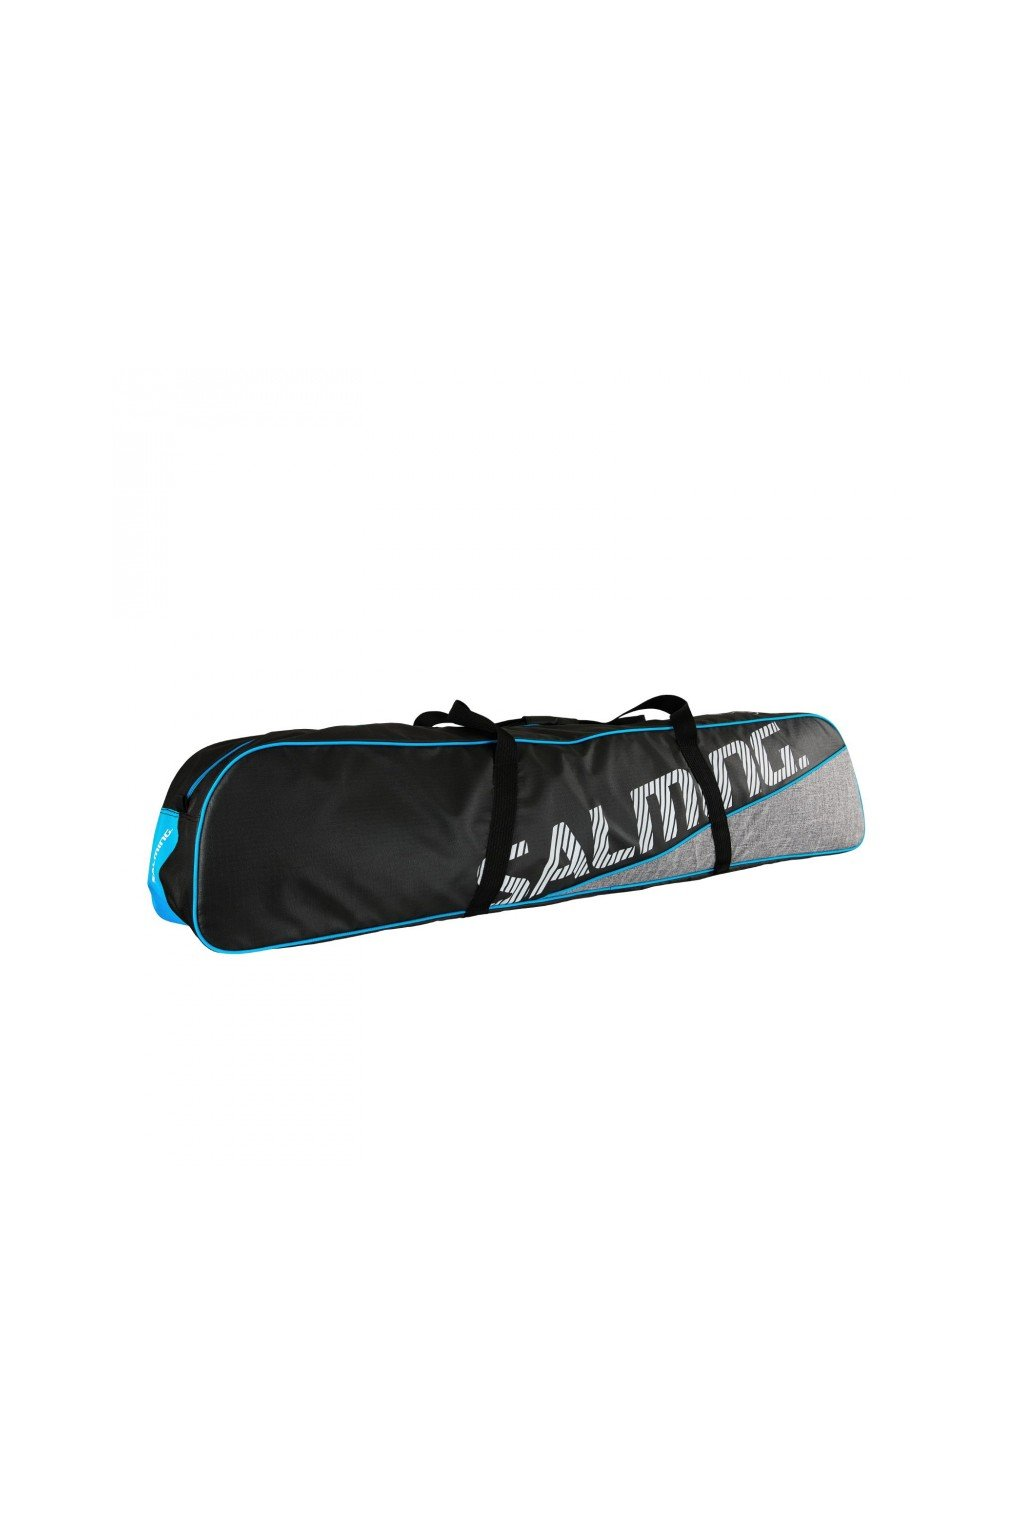 salming pro tour toolbag sr black grey